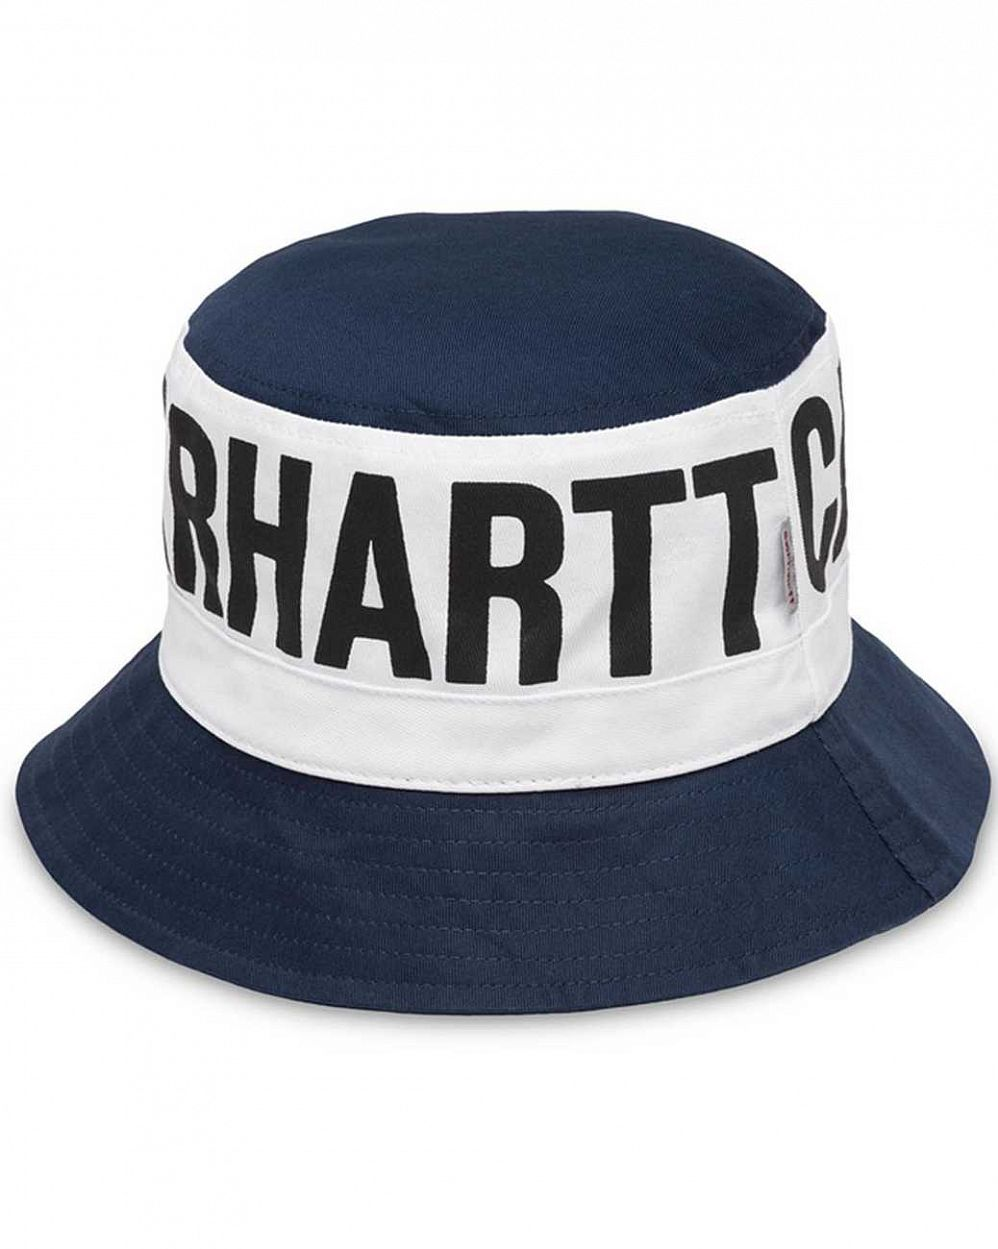 Панама Carhartt WIP Shore Bucket Hat Blue Black отзывы